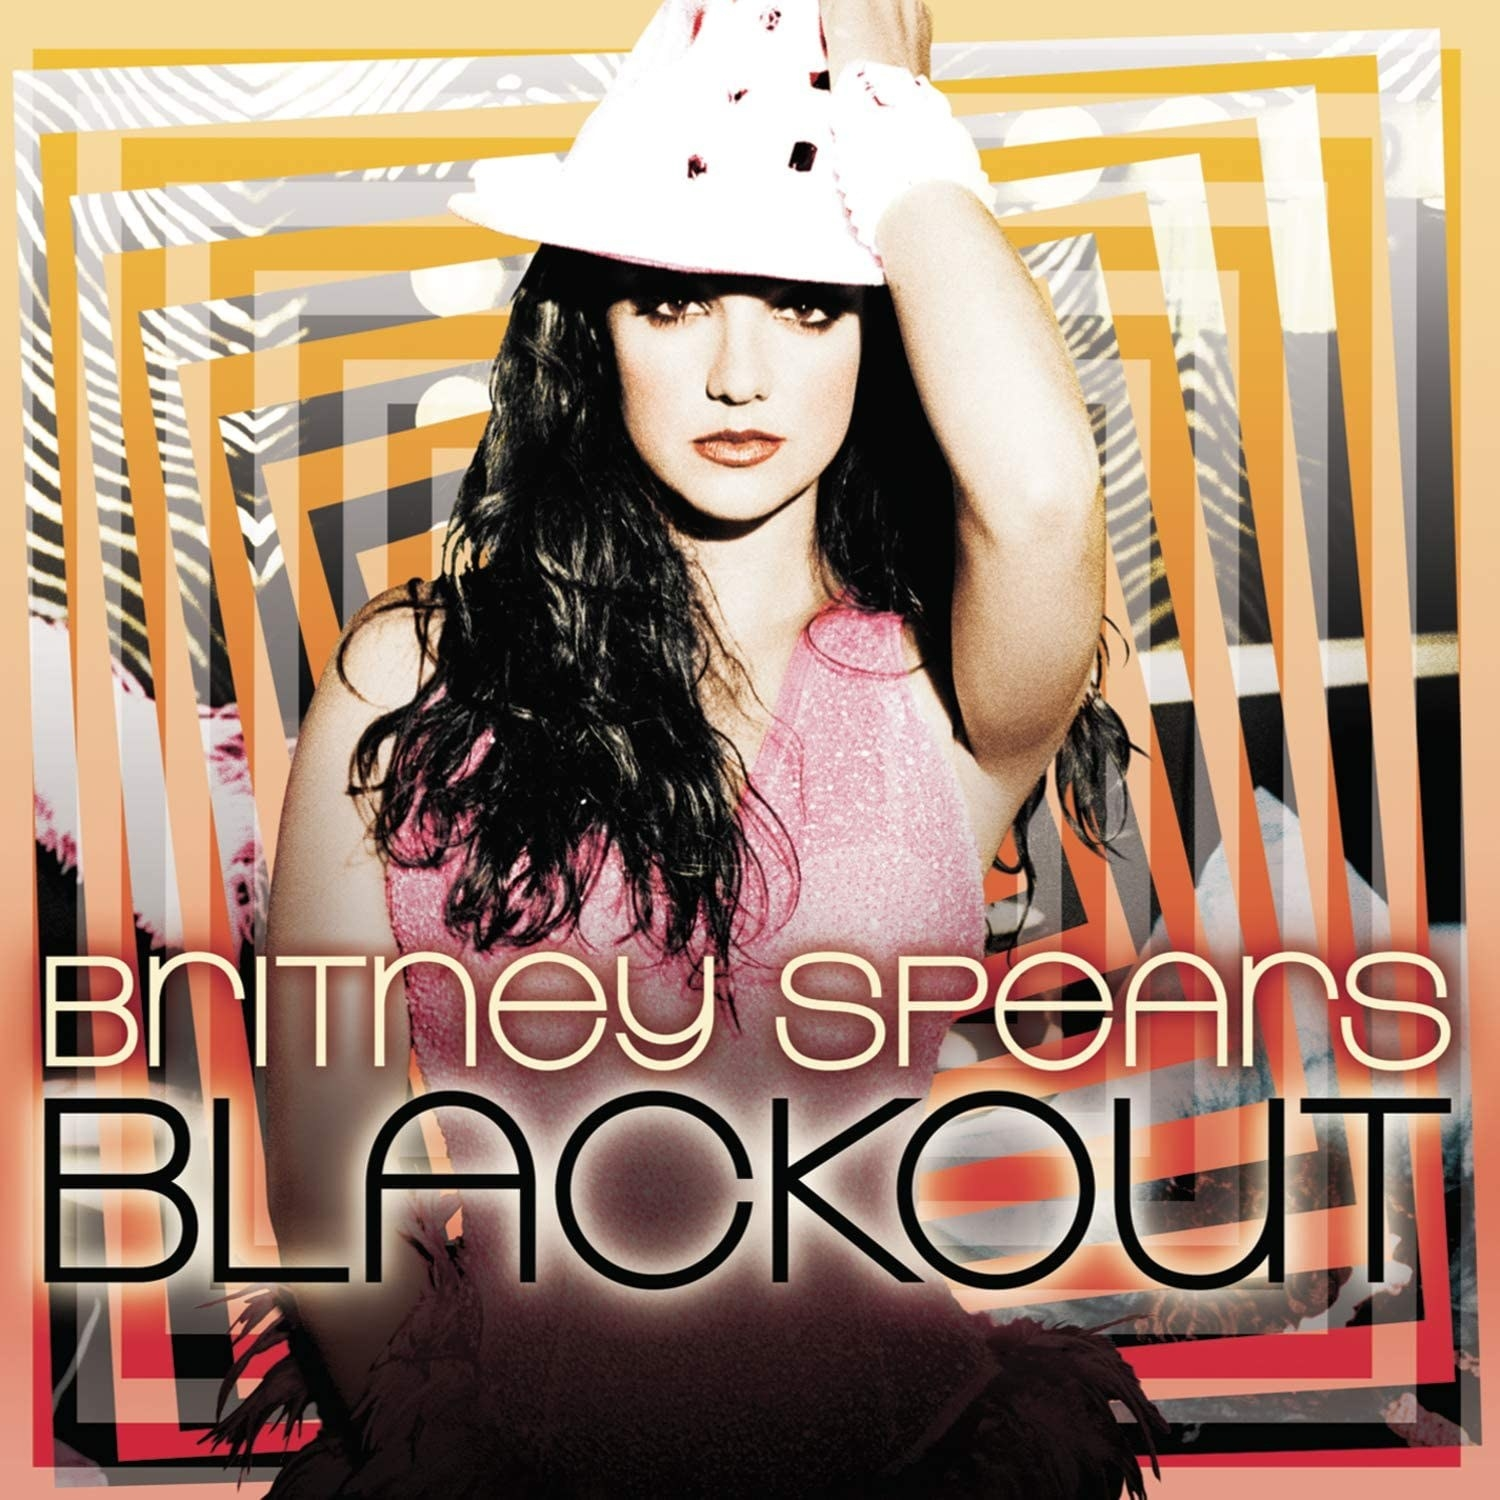 album cover of Blackout showing Britney Spears looking at the camera while wearing a fedora